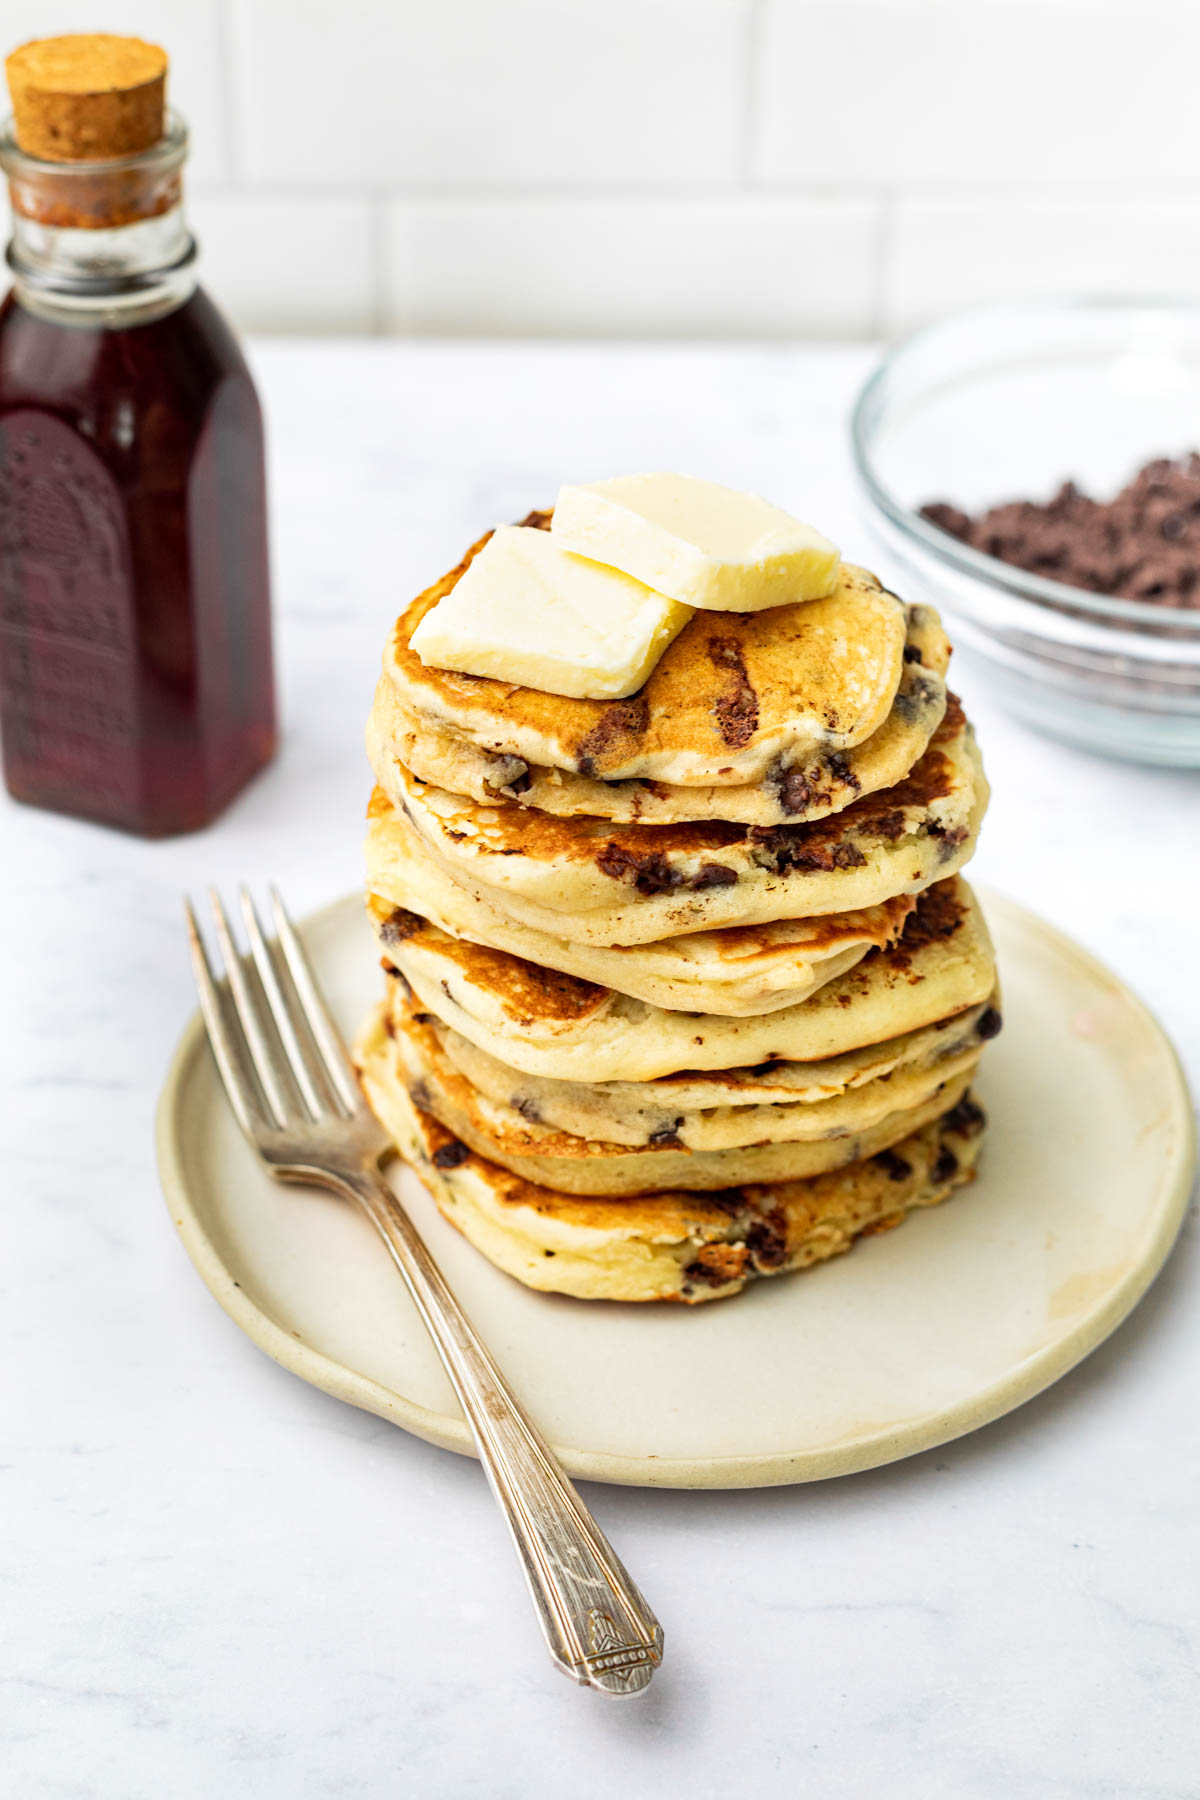 A stack of several chocolate chip pancakes with butter.